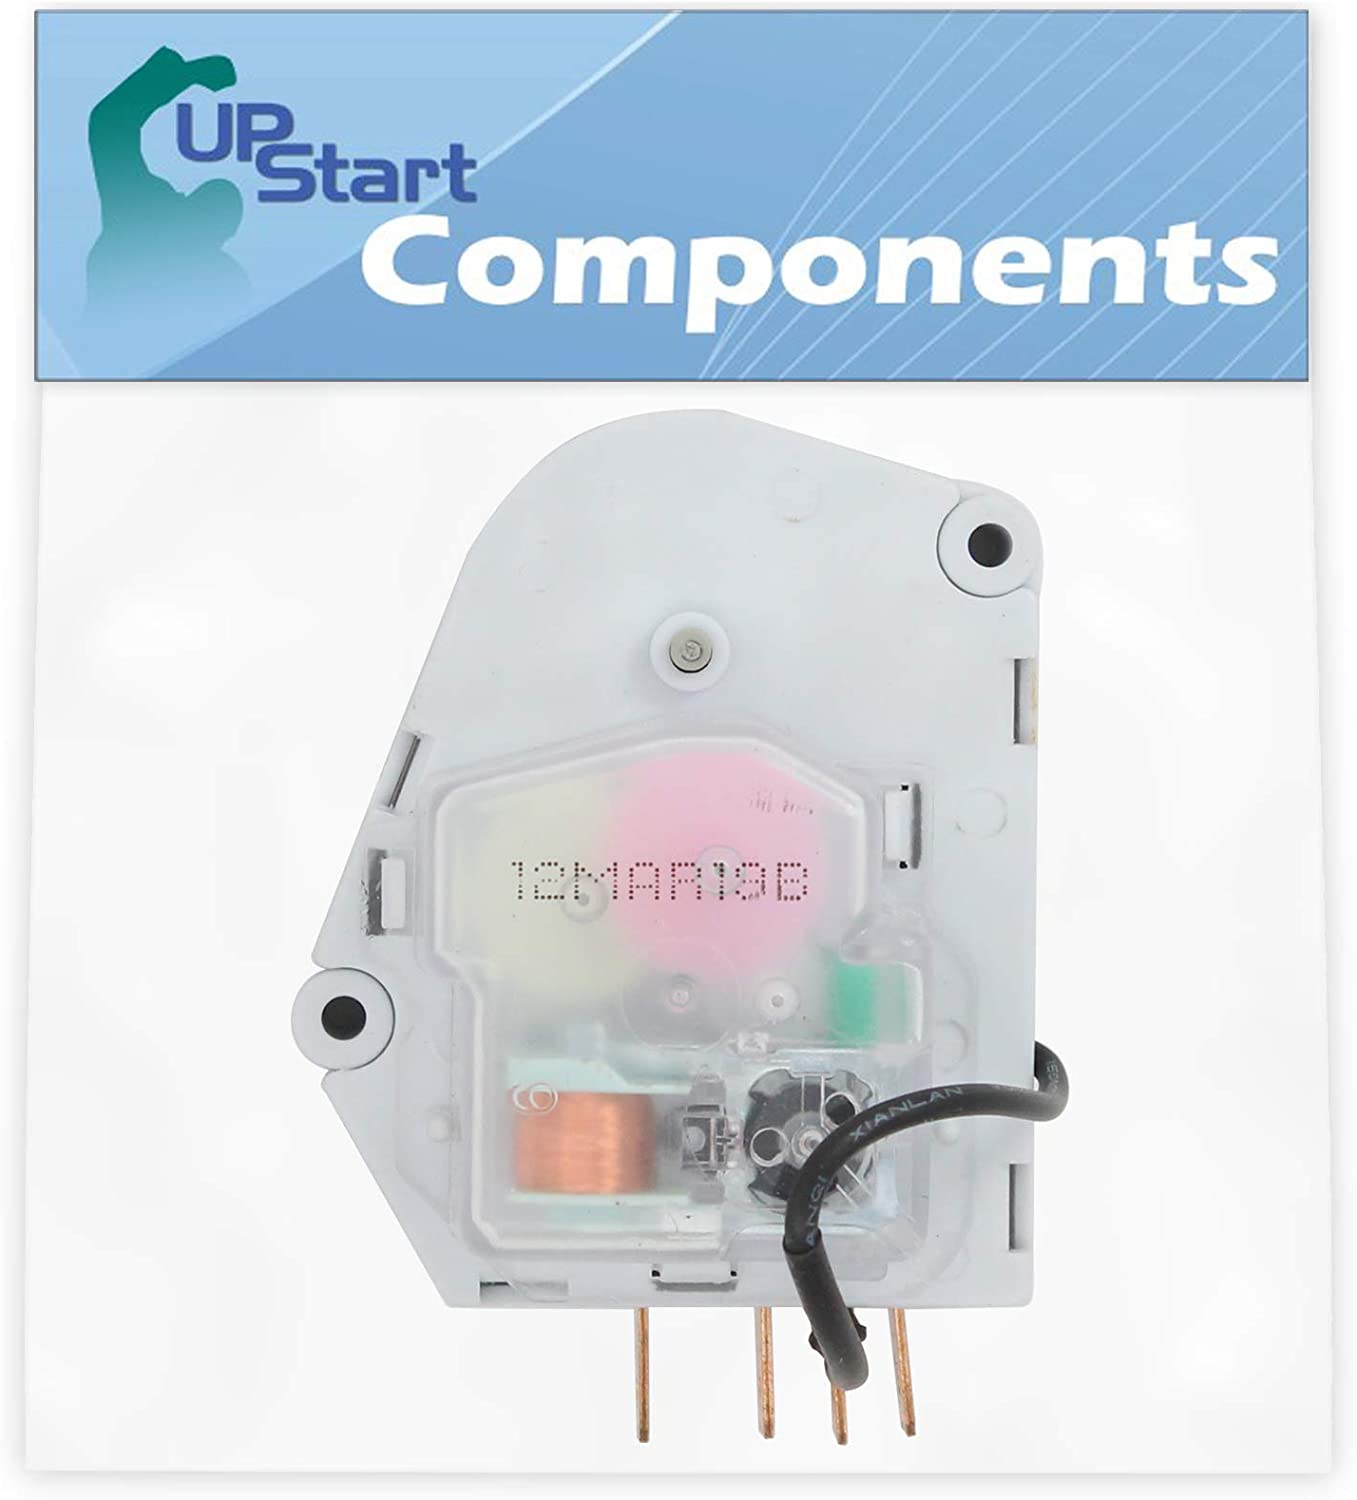 W10822278 Refrigerator Defrost Timer Replacement for Whirlpool ET1CHMXKQ03 Refrigerator - Compatible with 482493 Defrost Timer - UpStart Components Brand